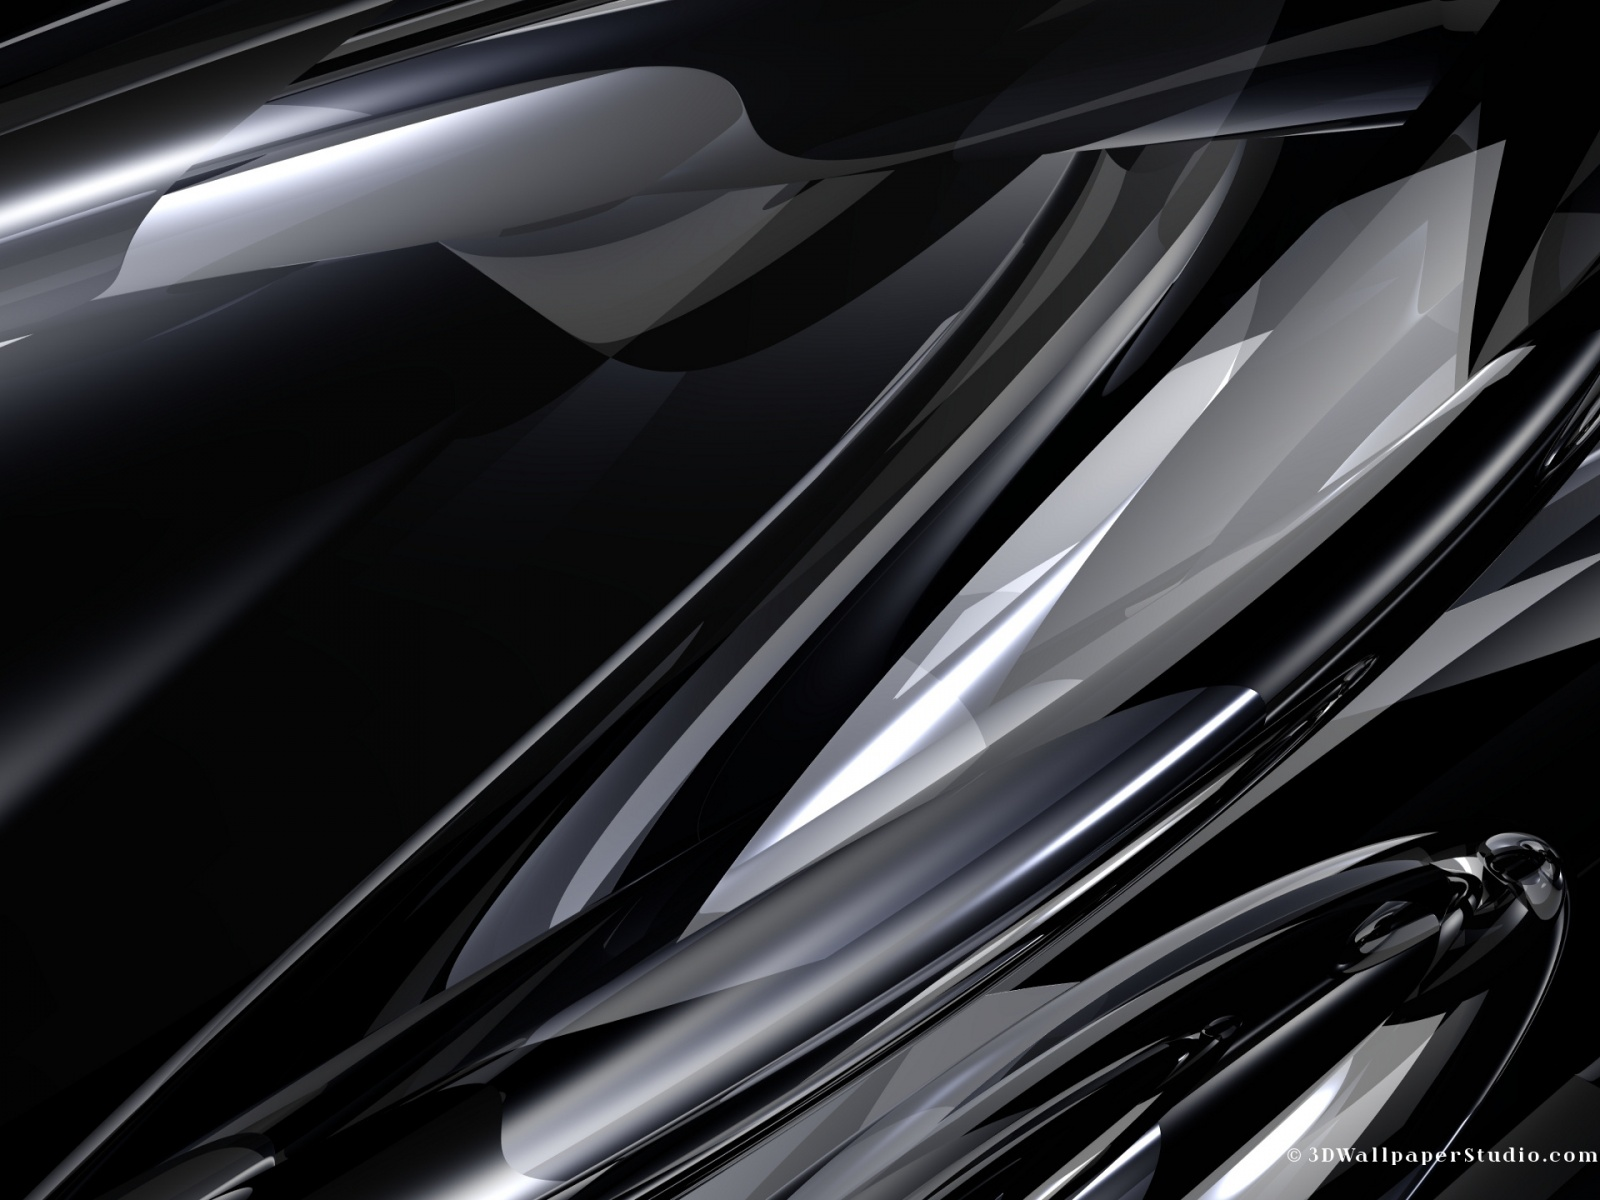 Ps Vita 3d Abstract Wallpapers Wallpaper